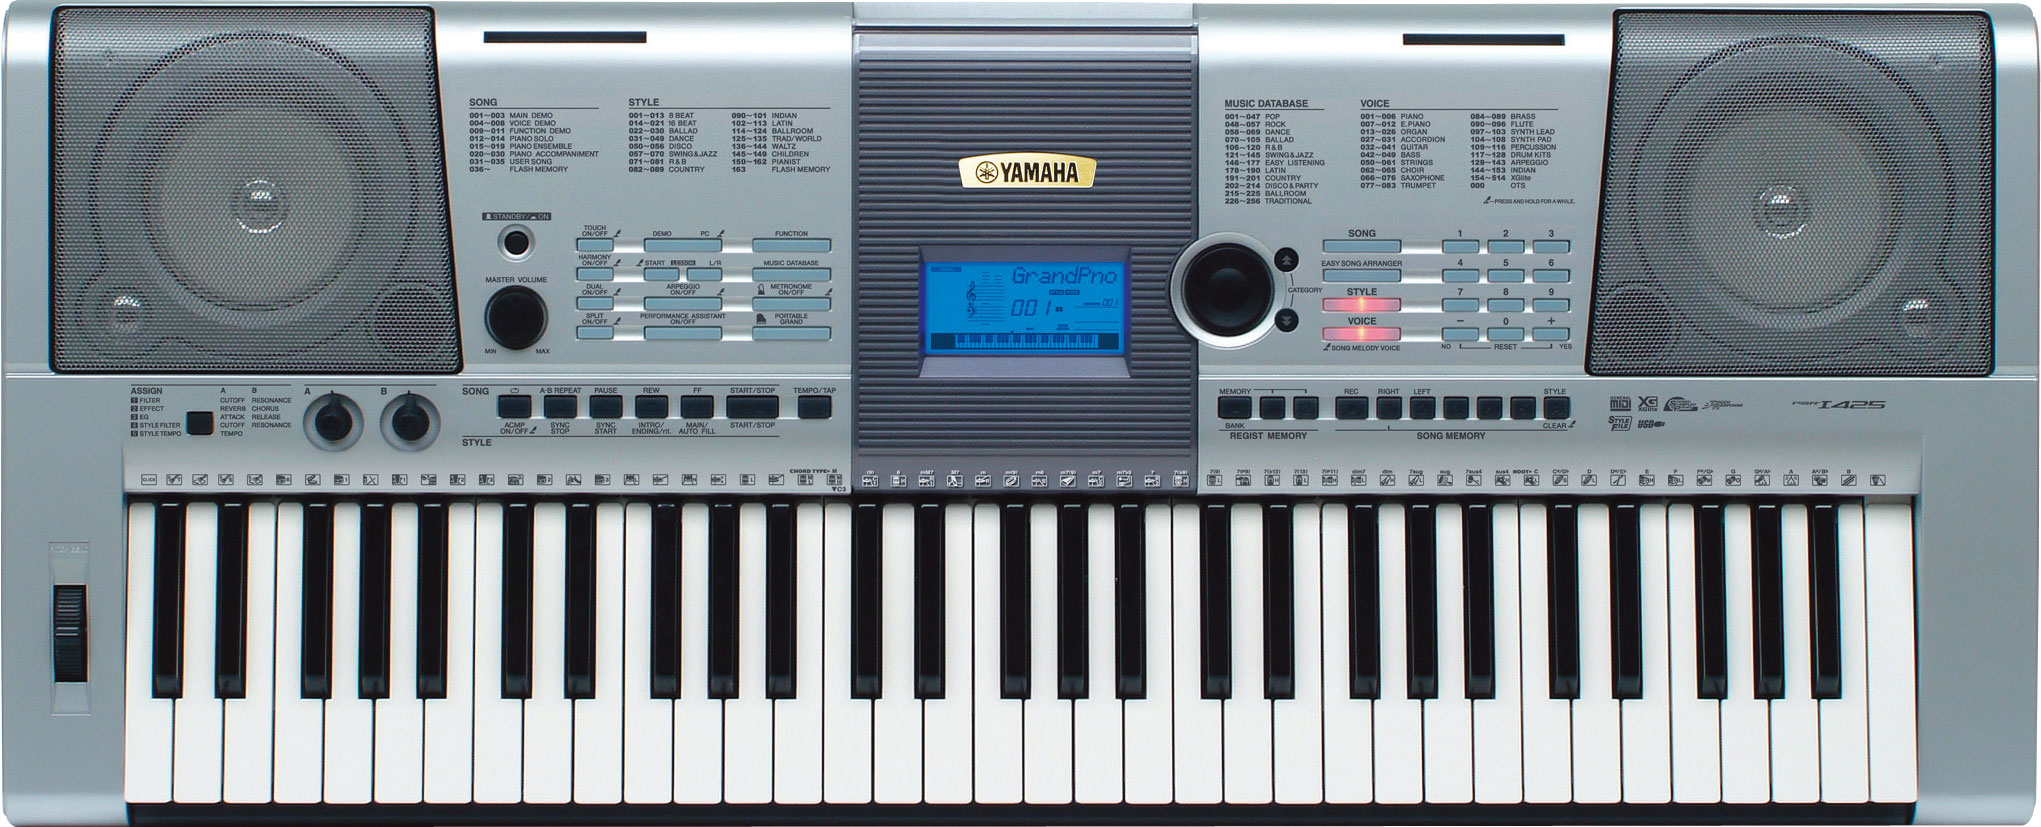 yamaha digital keyboard psr i425 available at shopclues. Black Bedroom Furniture Sets. Home Design Ideas